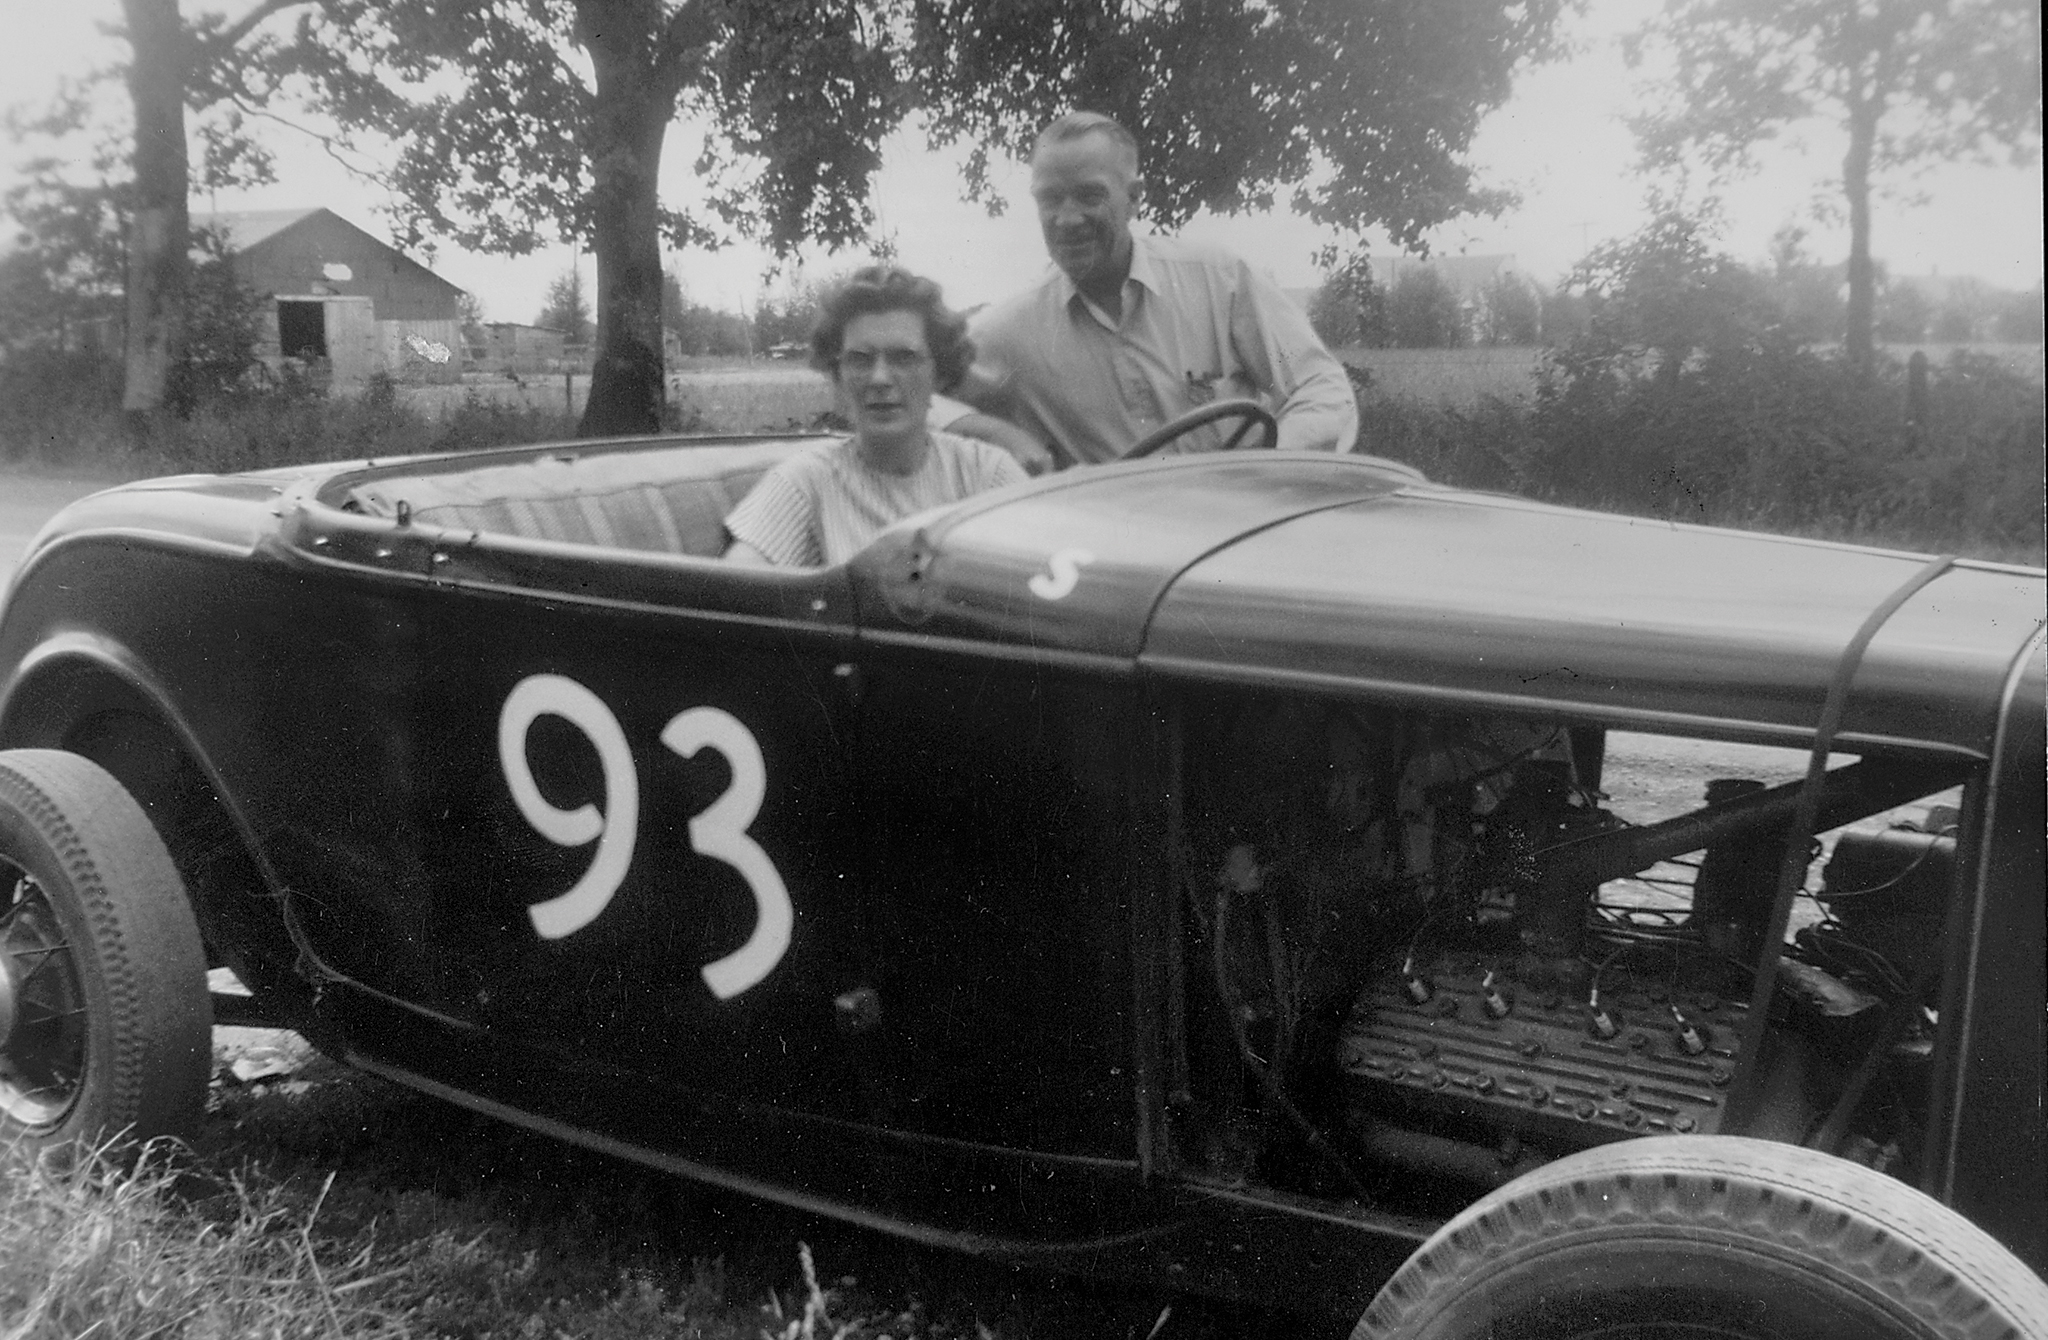 Jack was fortunate that his parents, Eva and Dewey Greiner, were proud supporters of his racing. Jack was unaware that Dewey carried a picture of one of his race cars in his wallet, and found out only after his dad passed away.